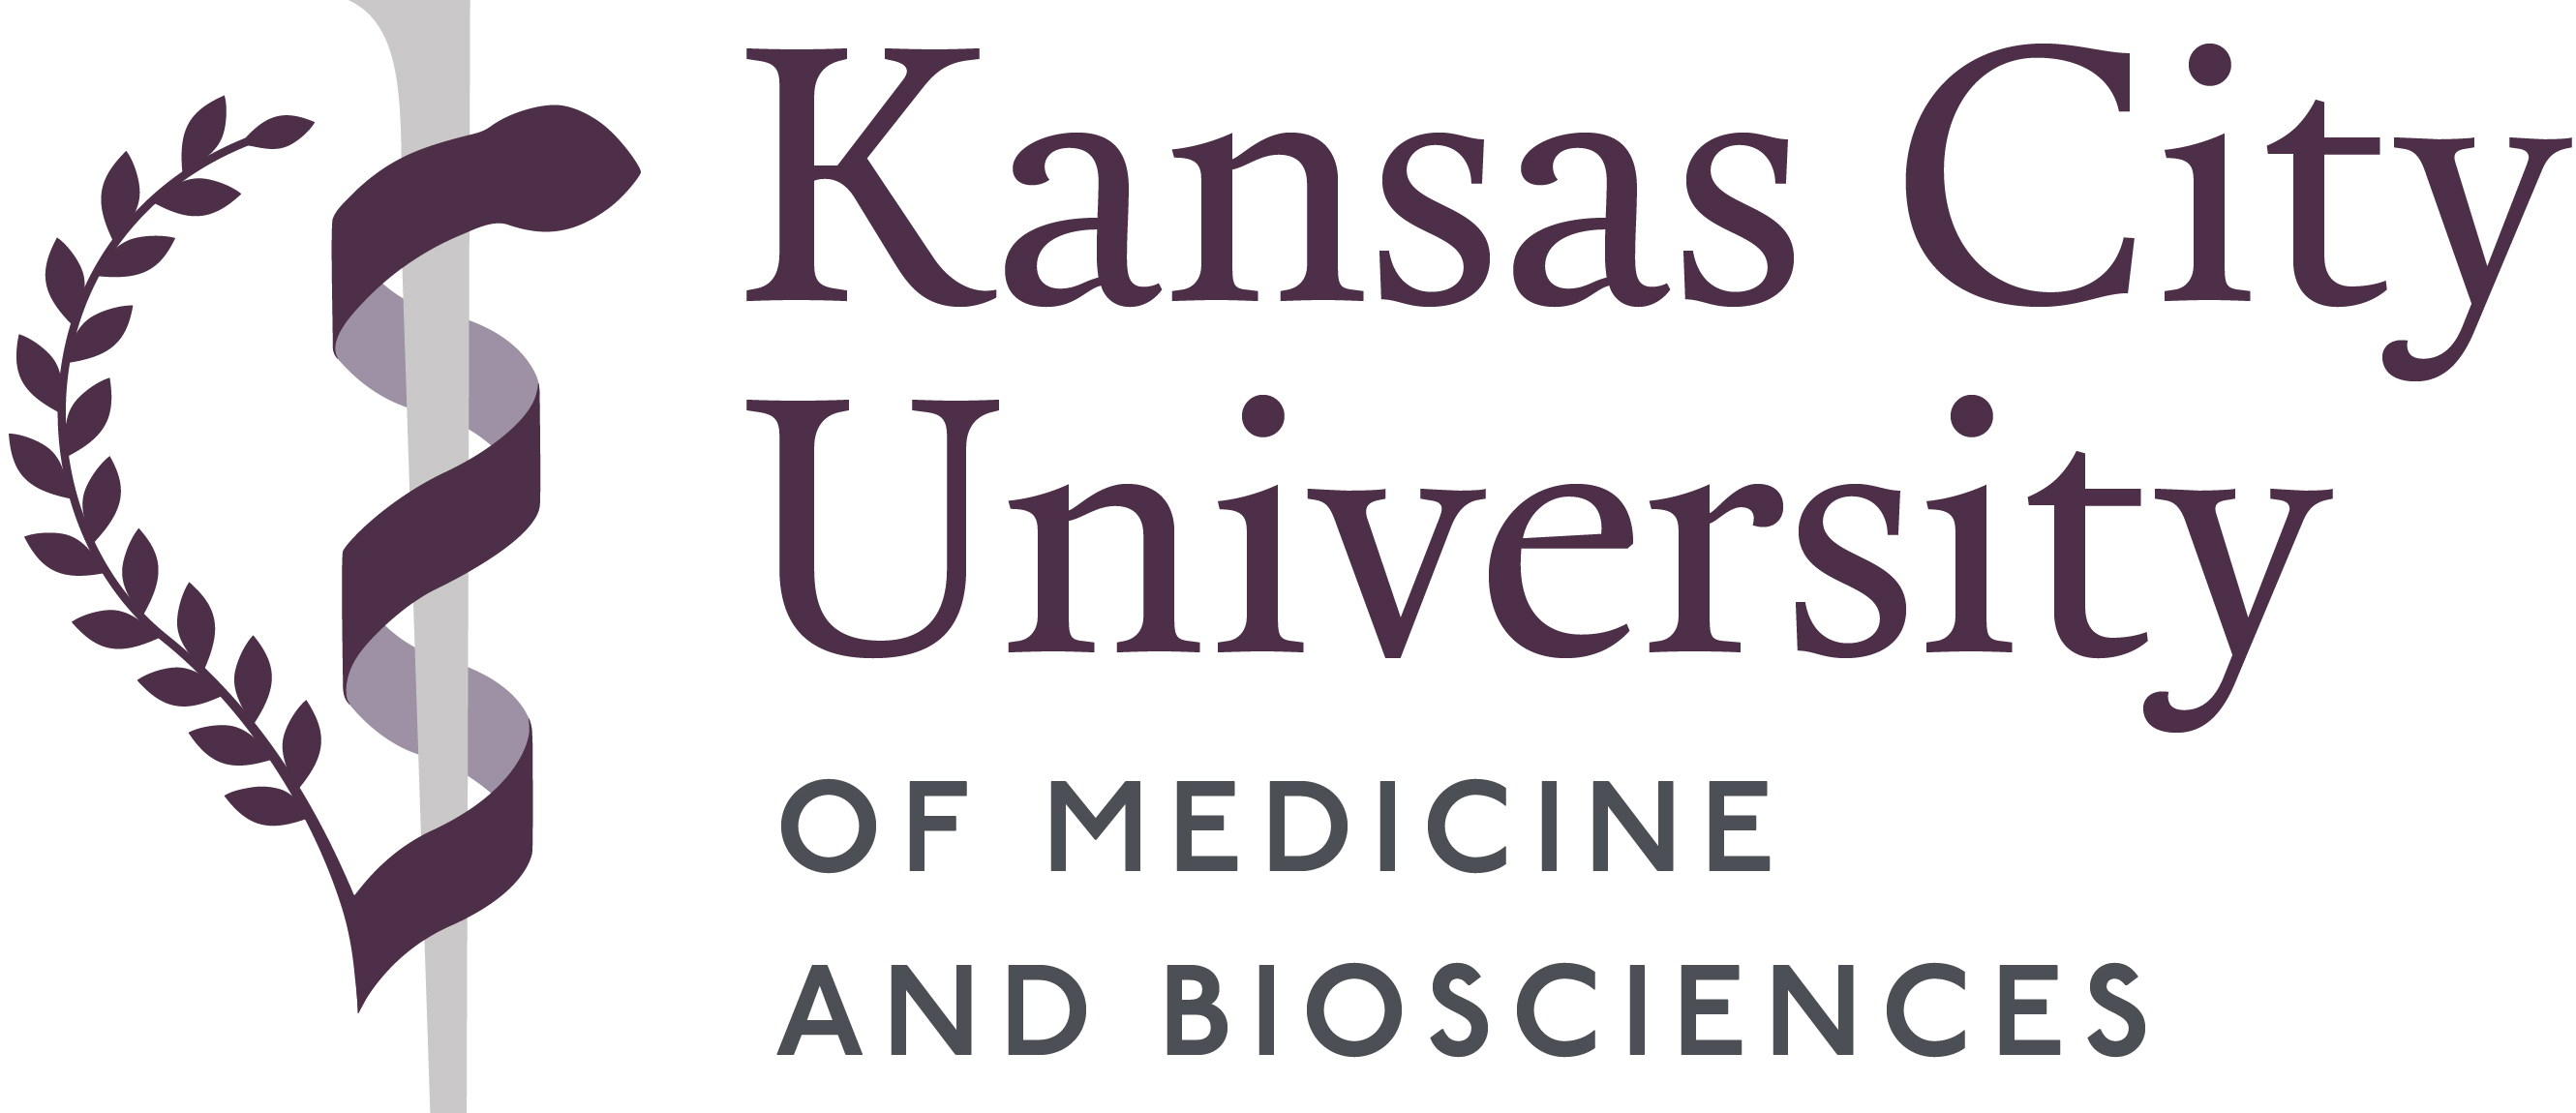 Kansas-City-University-of-Medicine-and-Biosciences-1585417070.jpg